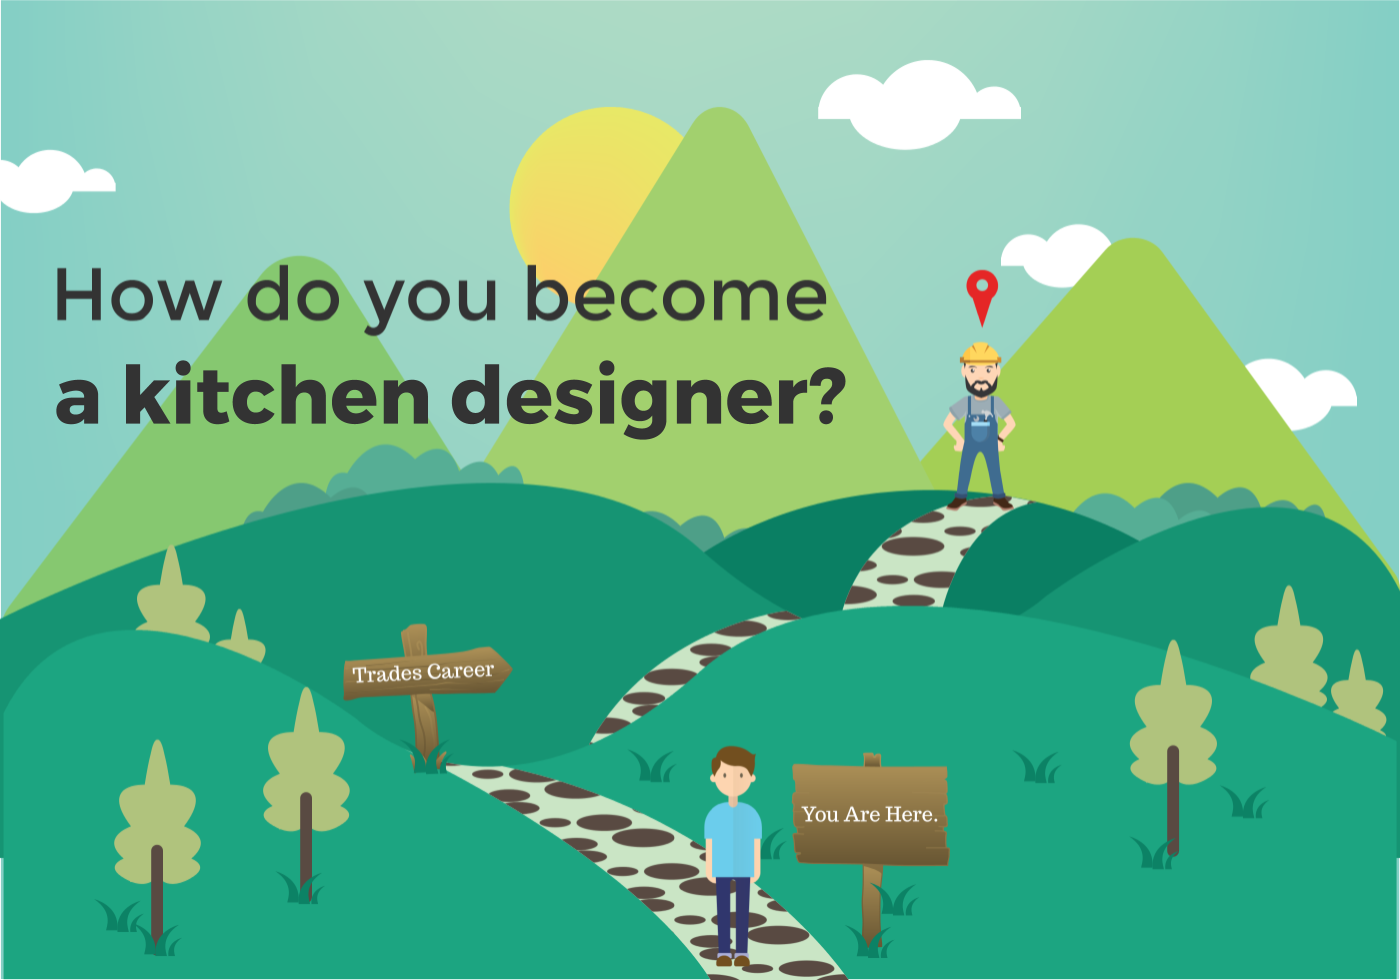 Kitchen Designer Job Description, Salary, Requirements | Construct-Ed